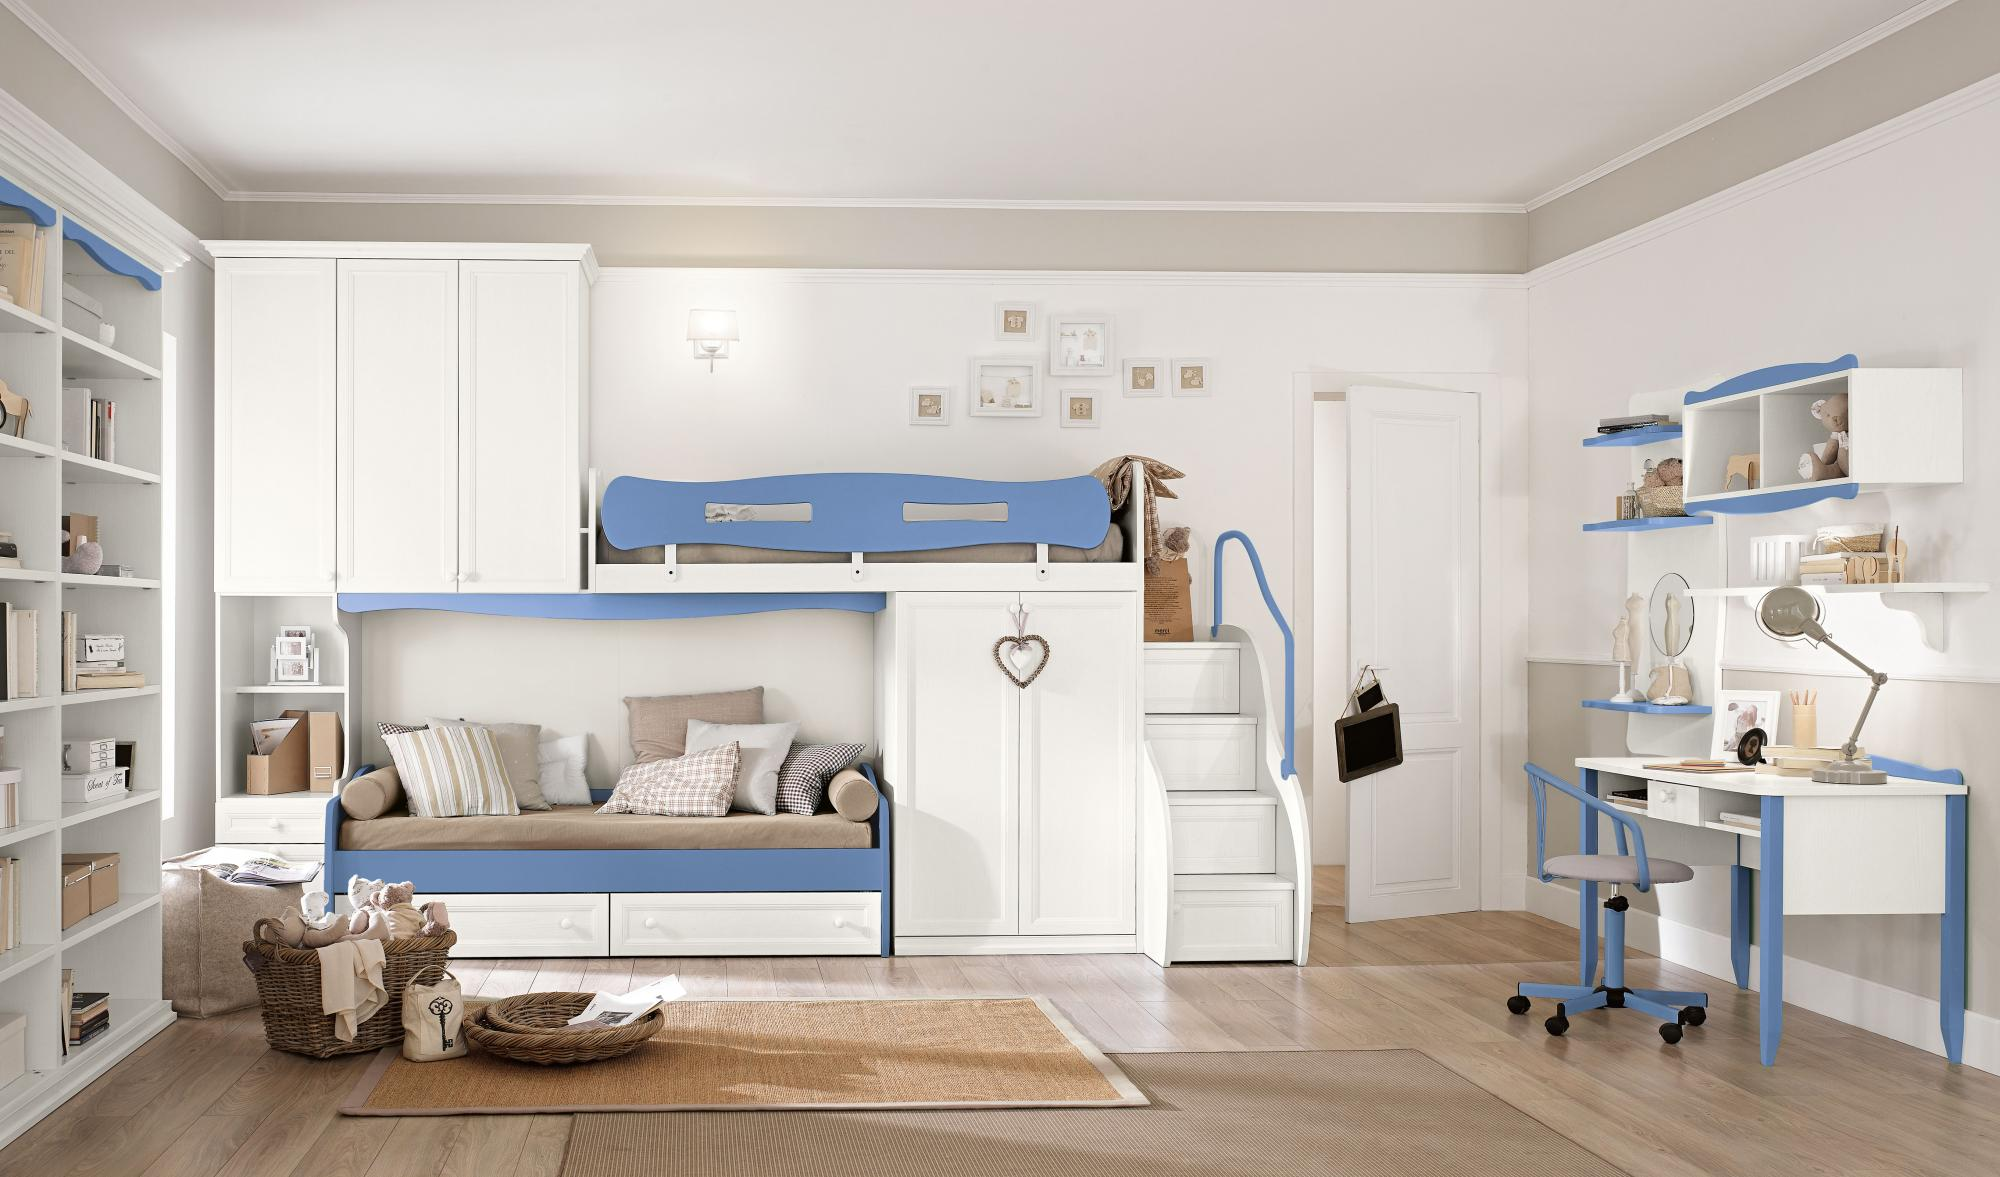 Arcadia Equipped Overhead Wardrobes - Baby and Kids - Bunk beds - Colombini Casa - Light blue - White - Kids bedrooms